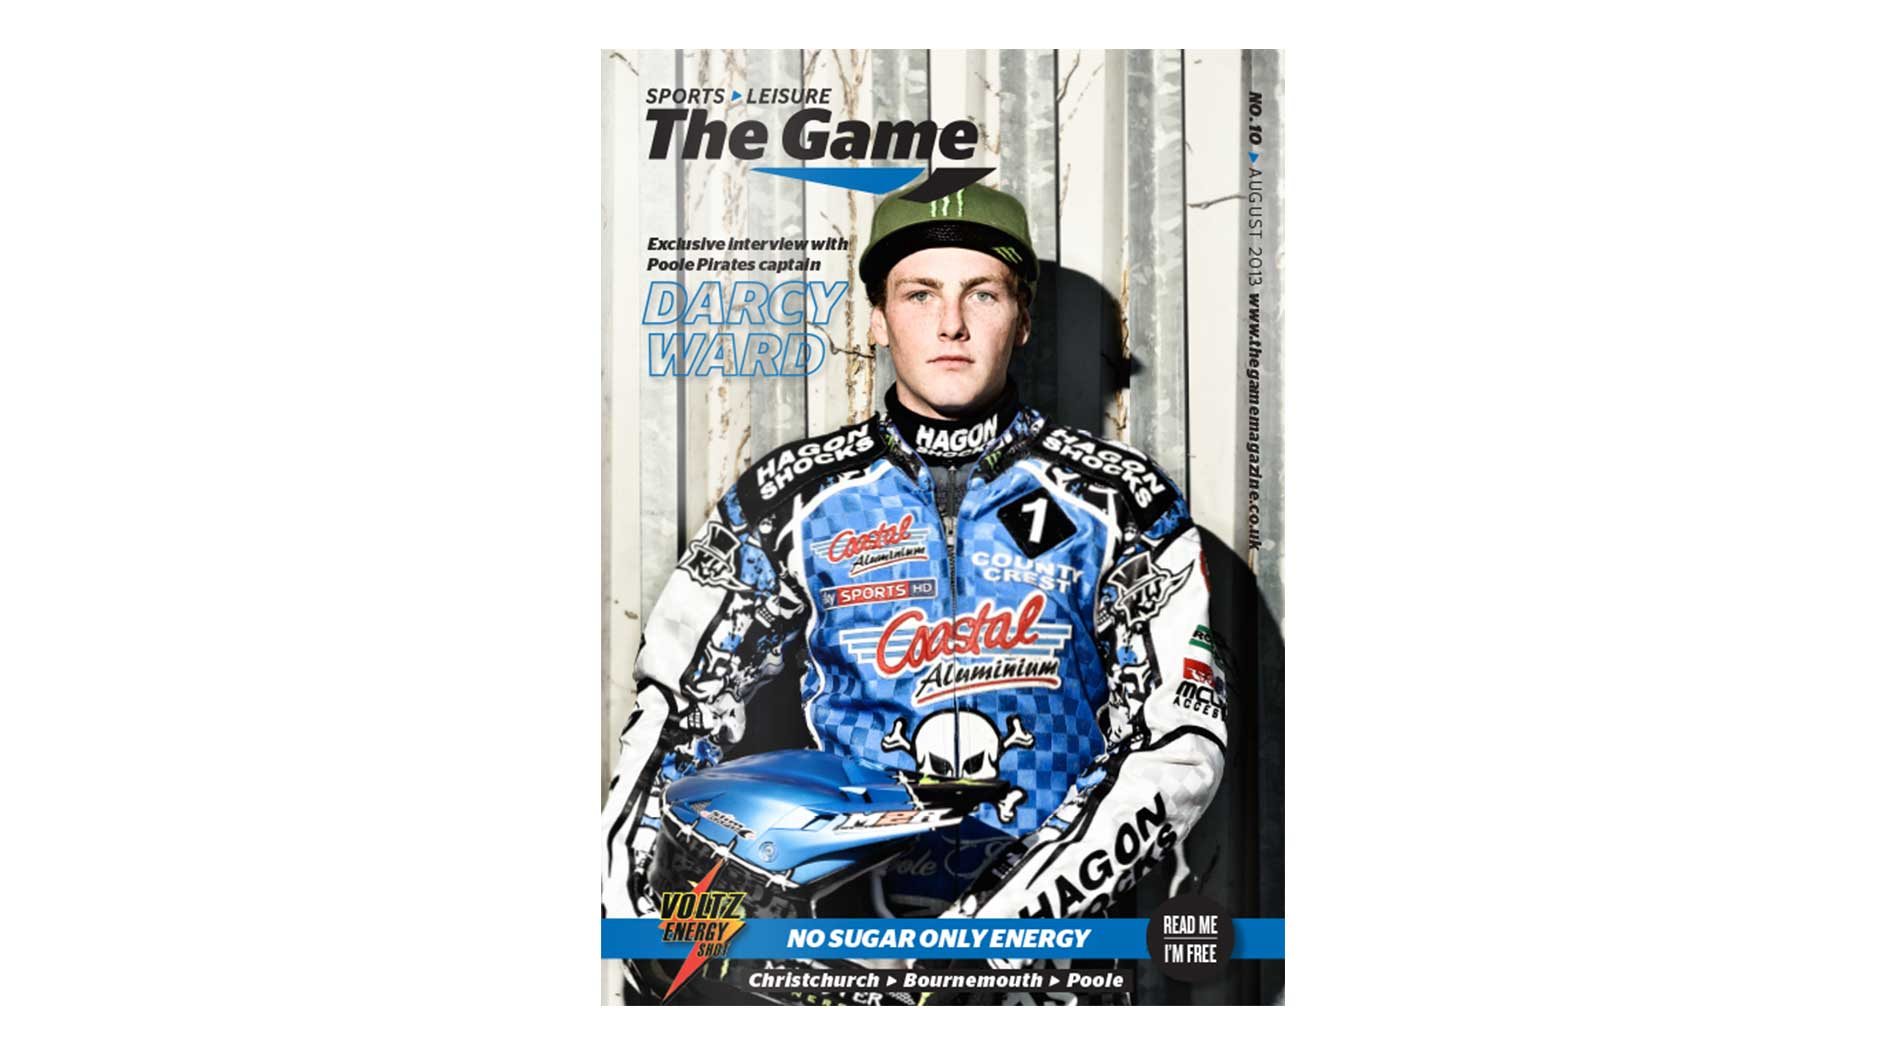 Game Magazine August 2013 front cover